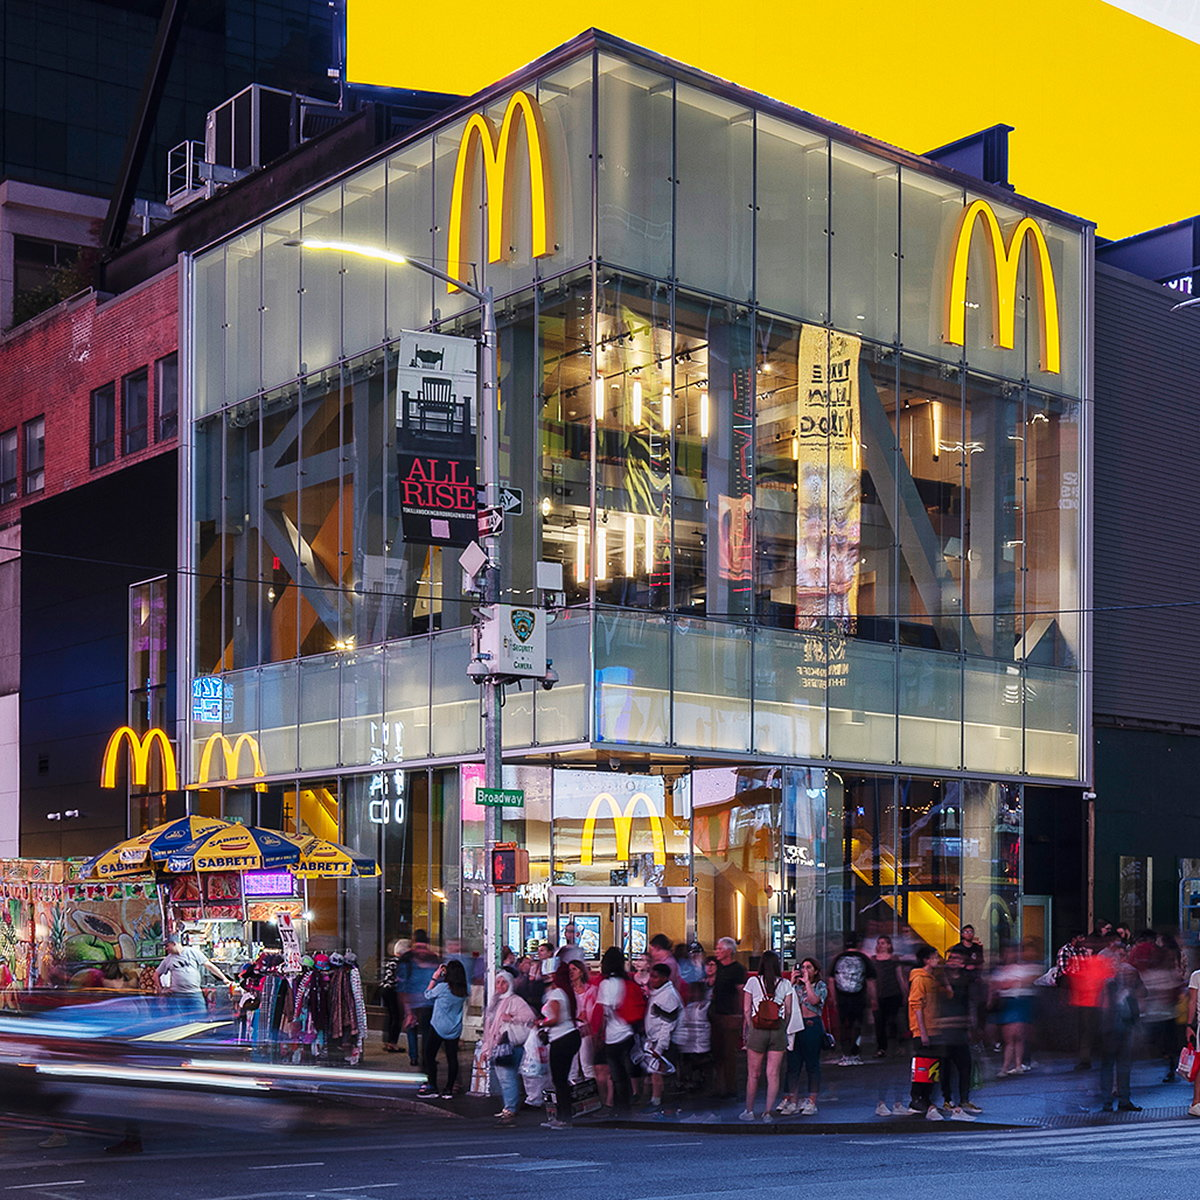 McDonald's Flagship Times Square Designed by Landini Associates